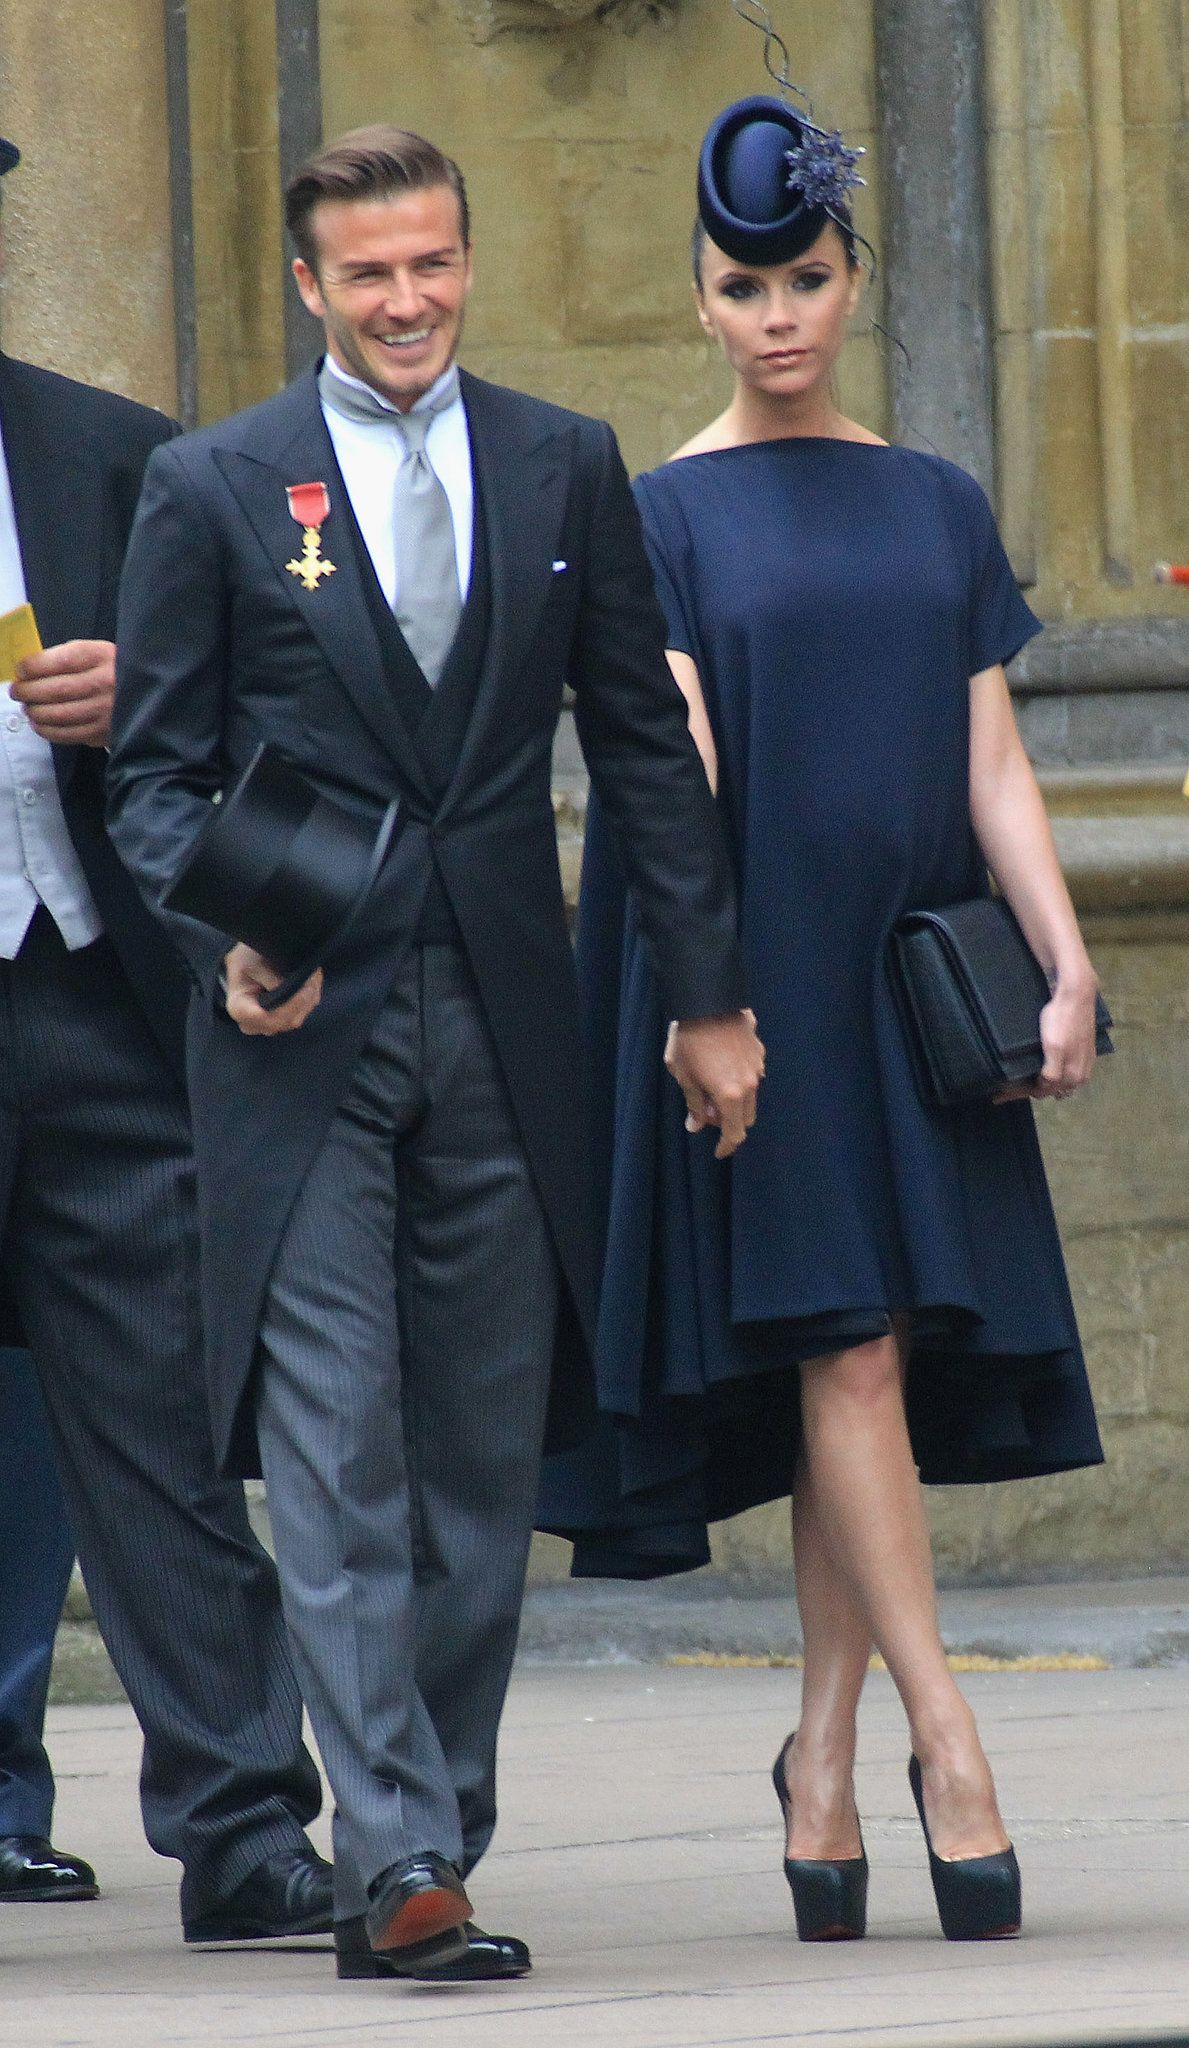 Who Cares About Princess Beatrice S Fascinator The Day Prince William And Kate Middleton Said I Do We Only Had Eyes For Victoria Sleek Style